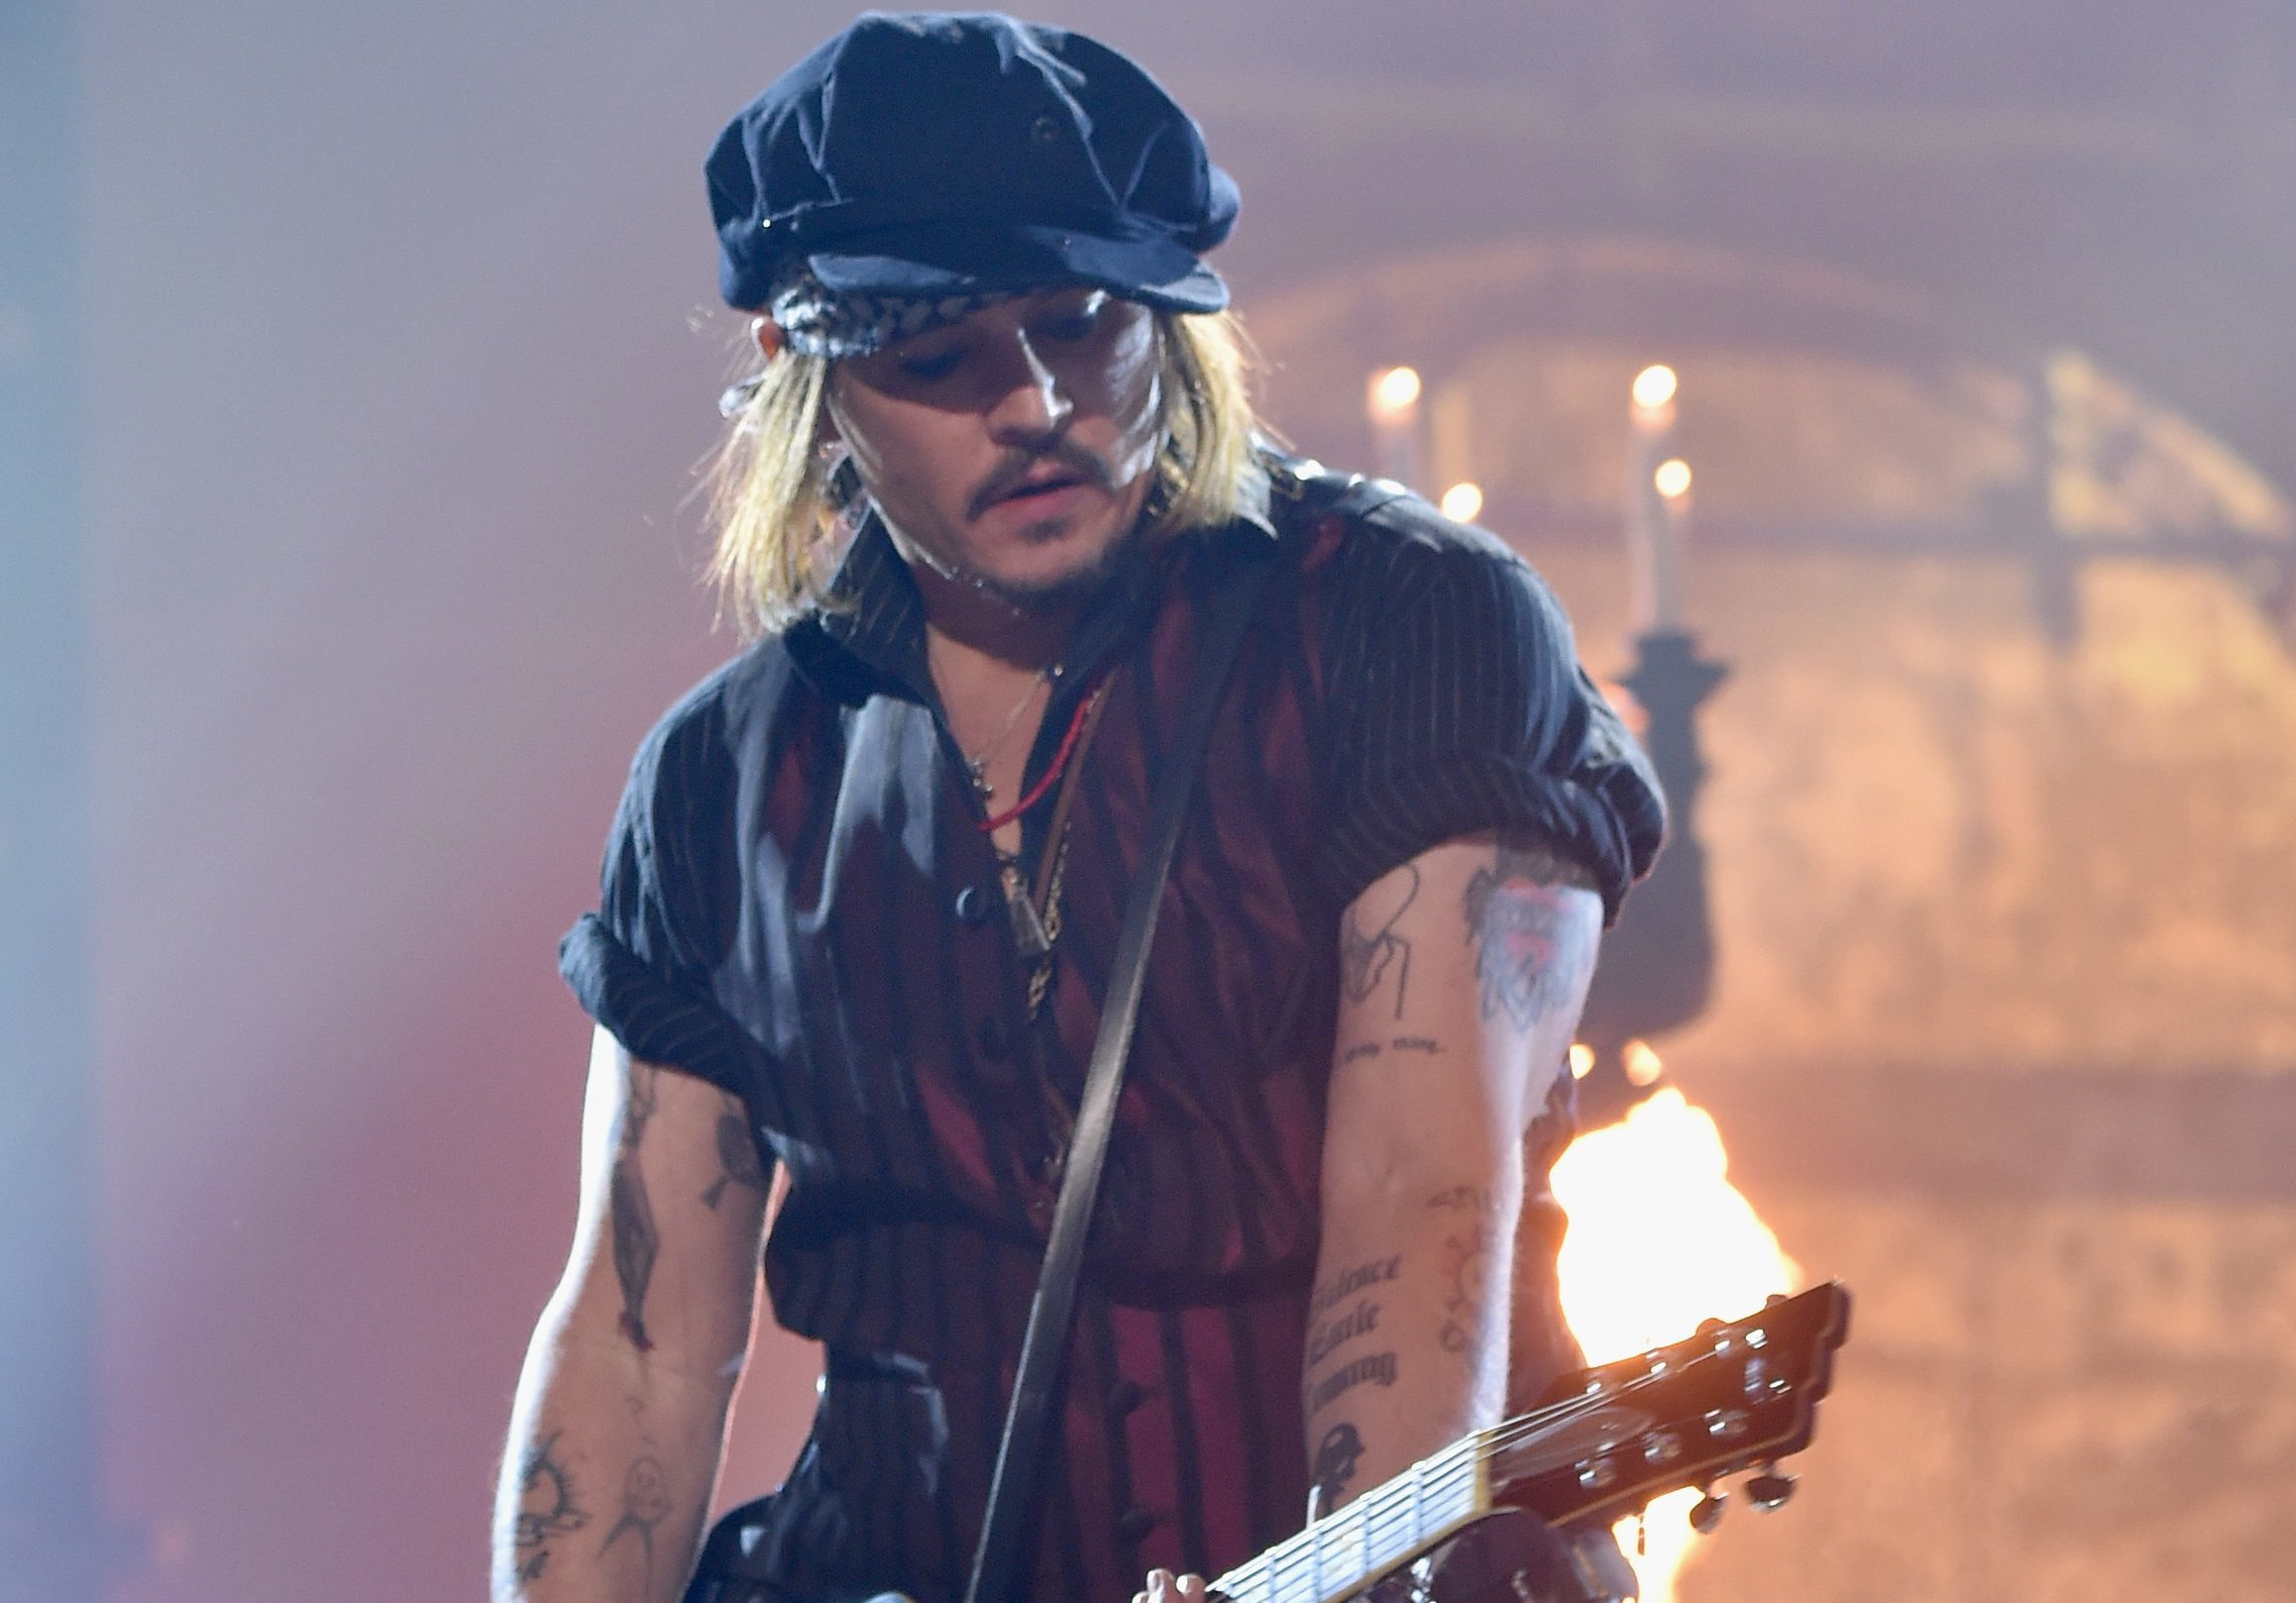 Johnny Depp onstage during the 58th Grammy Awards earlier this year